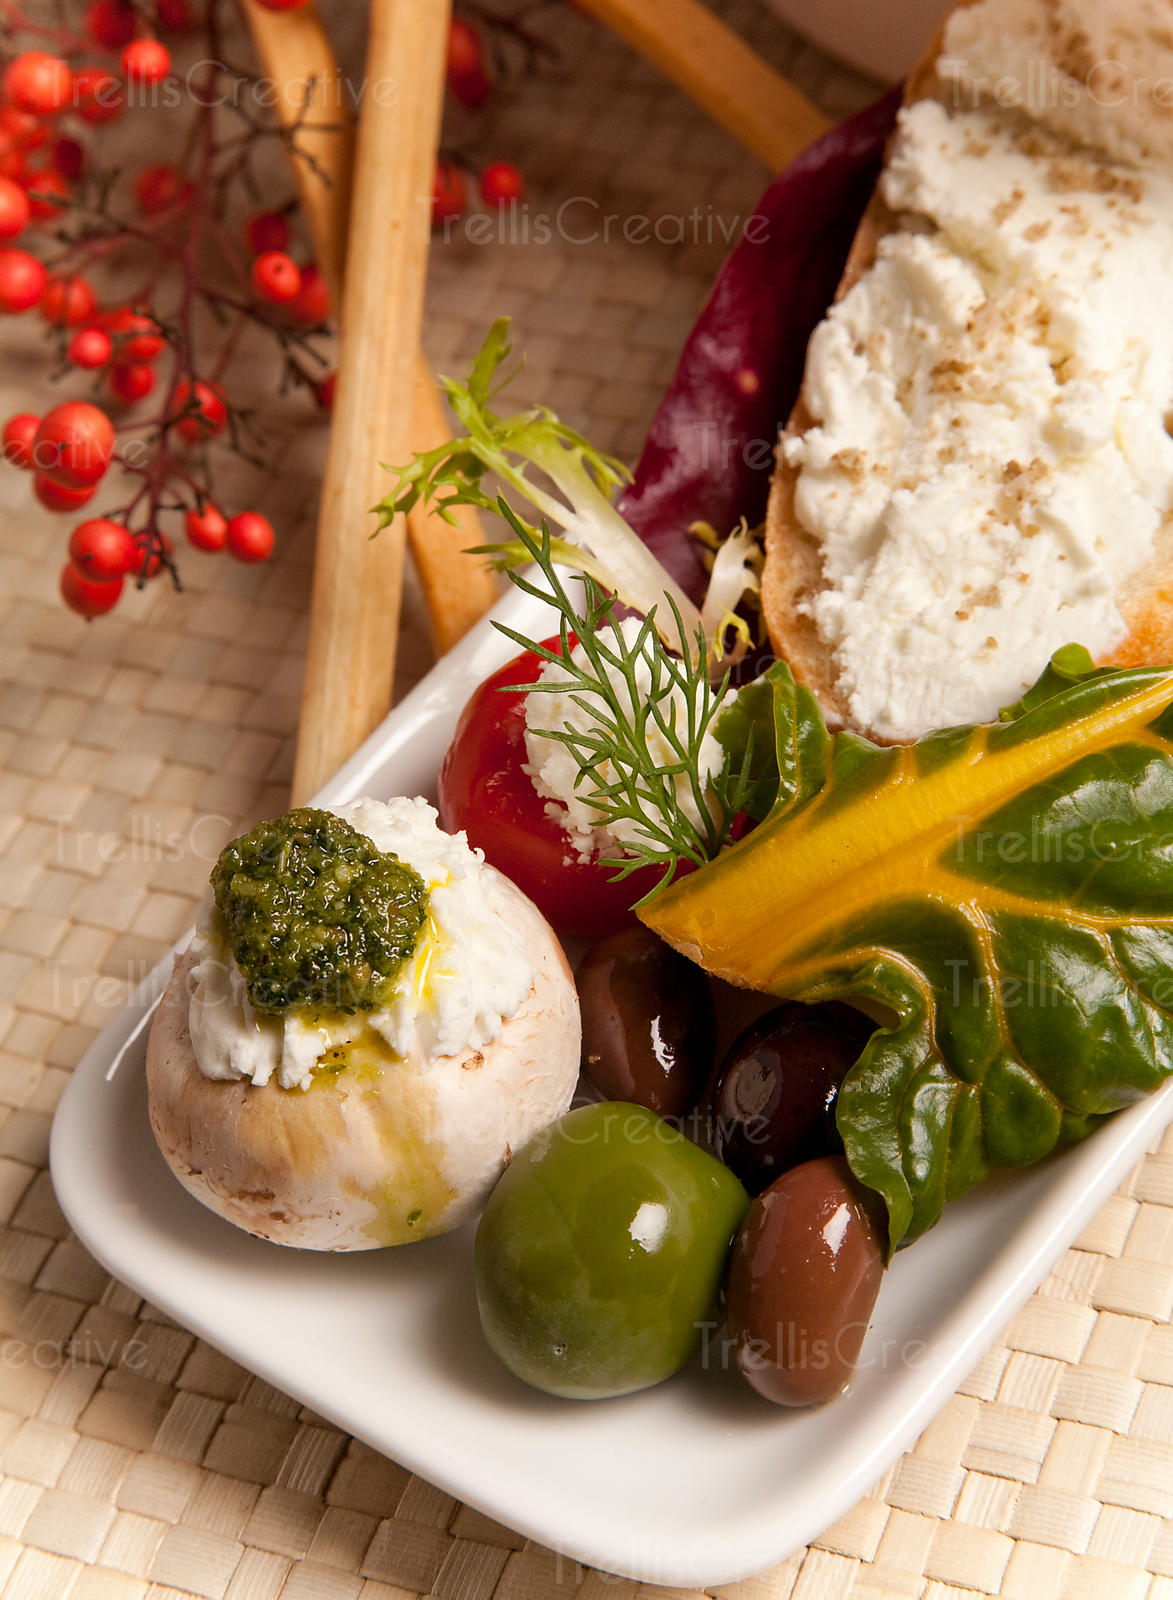 Appetizer plate of chard, olives, peppers, mushrooms and goat cheese on a white platter